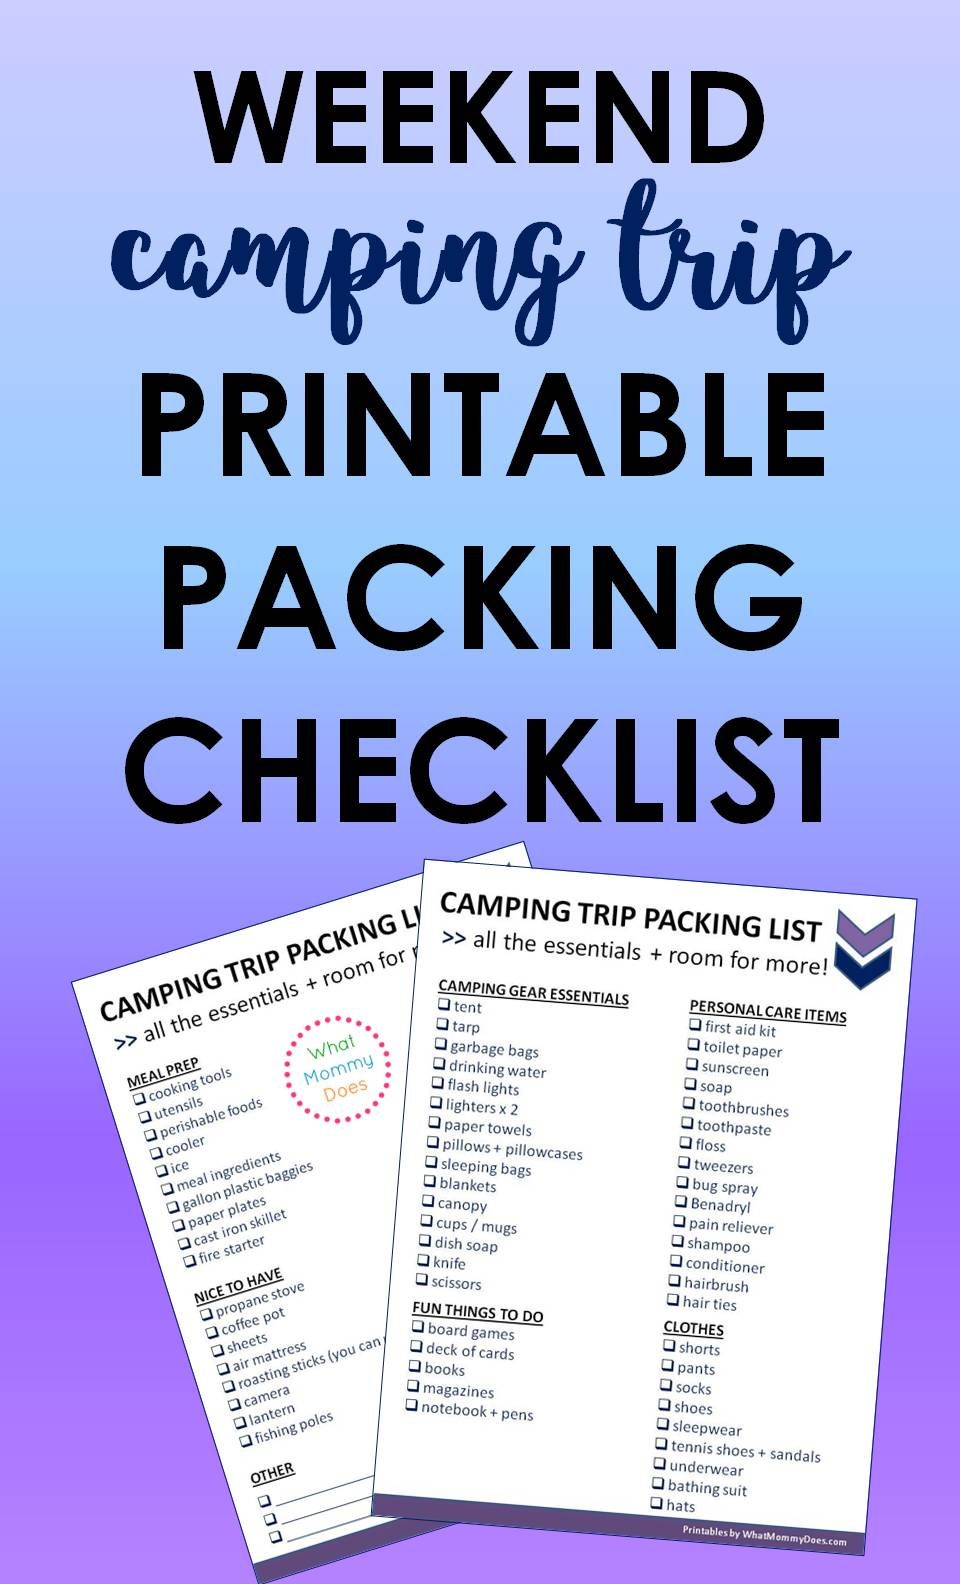 I'm so glad I found this camping packing checklist! It made preparing for our weekend camping trip so much easier!! I'm not even kidding. I kept getting worried that I wouldn't know what to bring for the kids or how we'd survive the weekend in a tent together. This girl makes it sound so simple & straightforward. Highly recommend this list of essentials. You can always add extra stuff yourself later, but it's nice to know what you need / don't need to take.   tent camping newbie, camping with kids, camping ideas